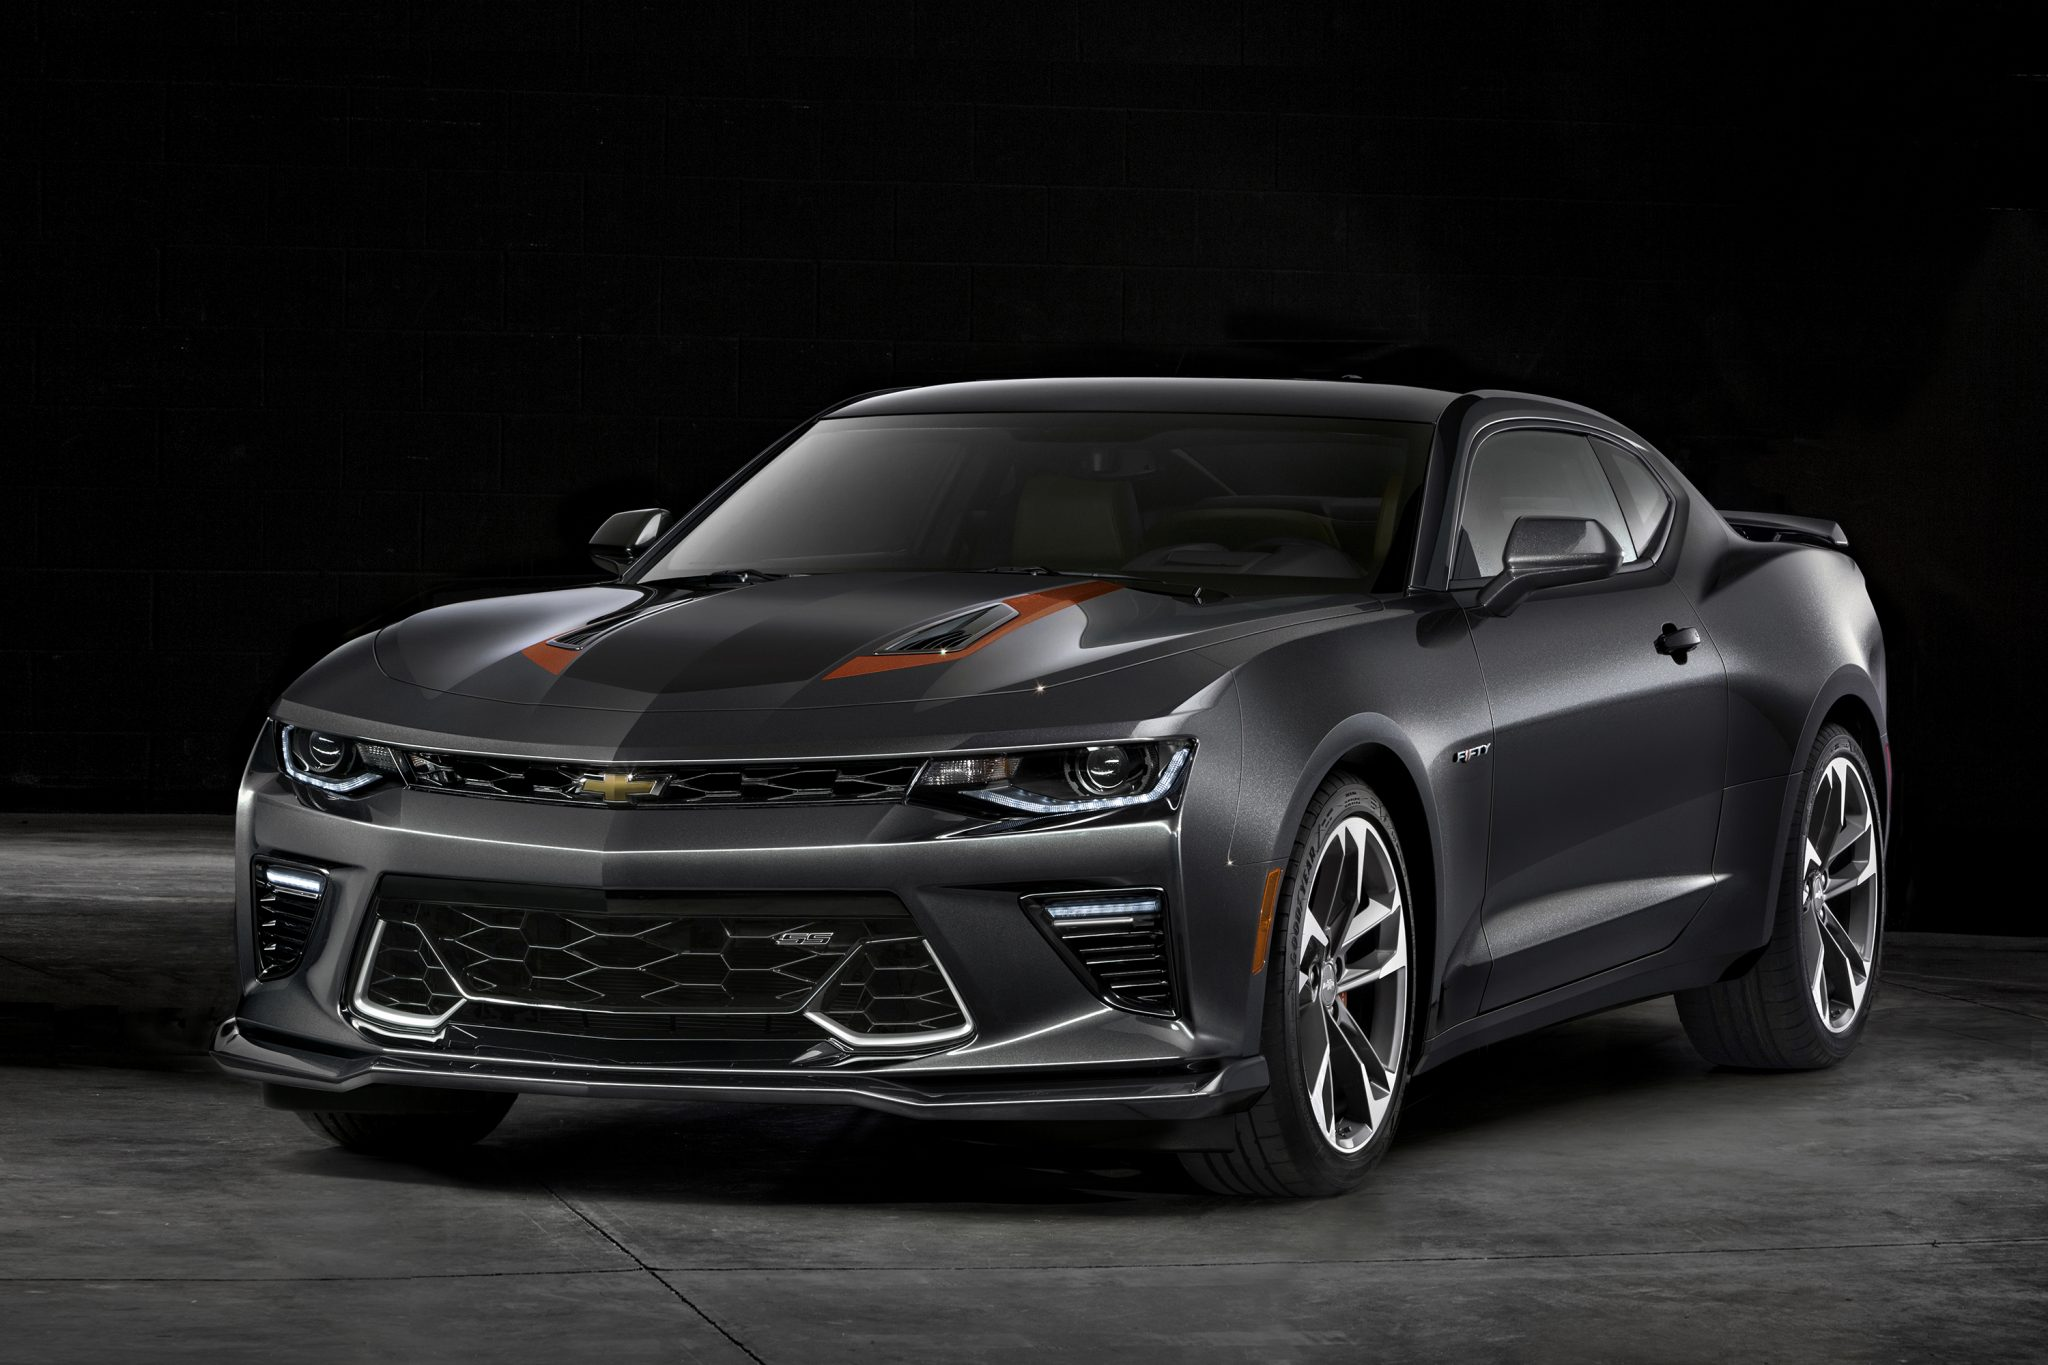 2017 Chevrolet Camaro ZL1 Quick Take Review | Automobile Magazine on chevrolet mustang, chevrolet malibu, chevrolet impala, chevrolet chevelle, chevrolet truck, chevrolet charger, chevrolet monte carlo, chevrolet el camino, chevrolet cars, chevrolet suv, chevrolet silverado, chevrolet caprice, chevrolet chevy, chevrolet escalade, chevrolet beretta, chevrolet suburban, chevrolet corvette, chevrolet cruze, chevrolet differential,